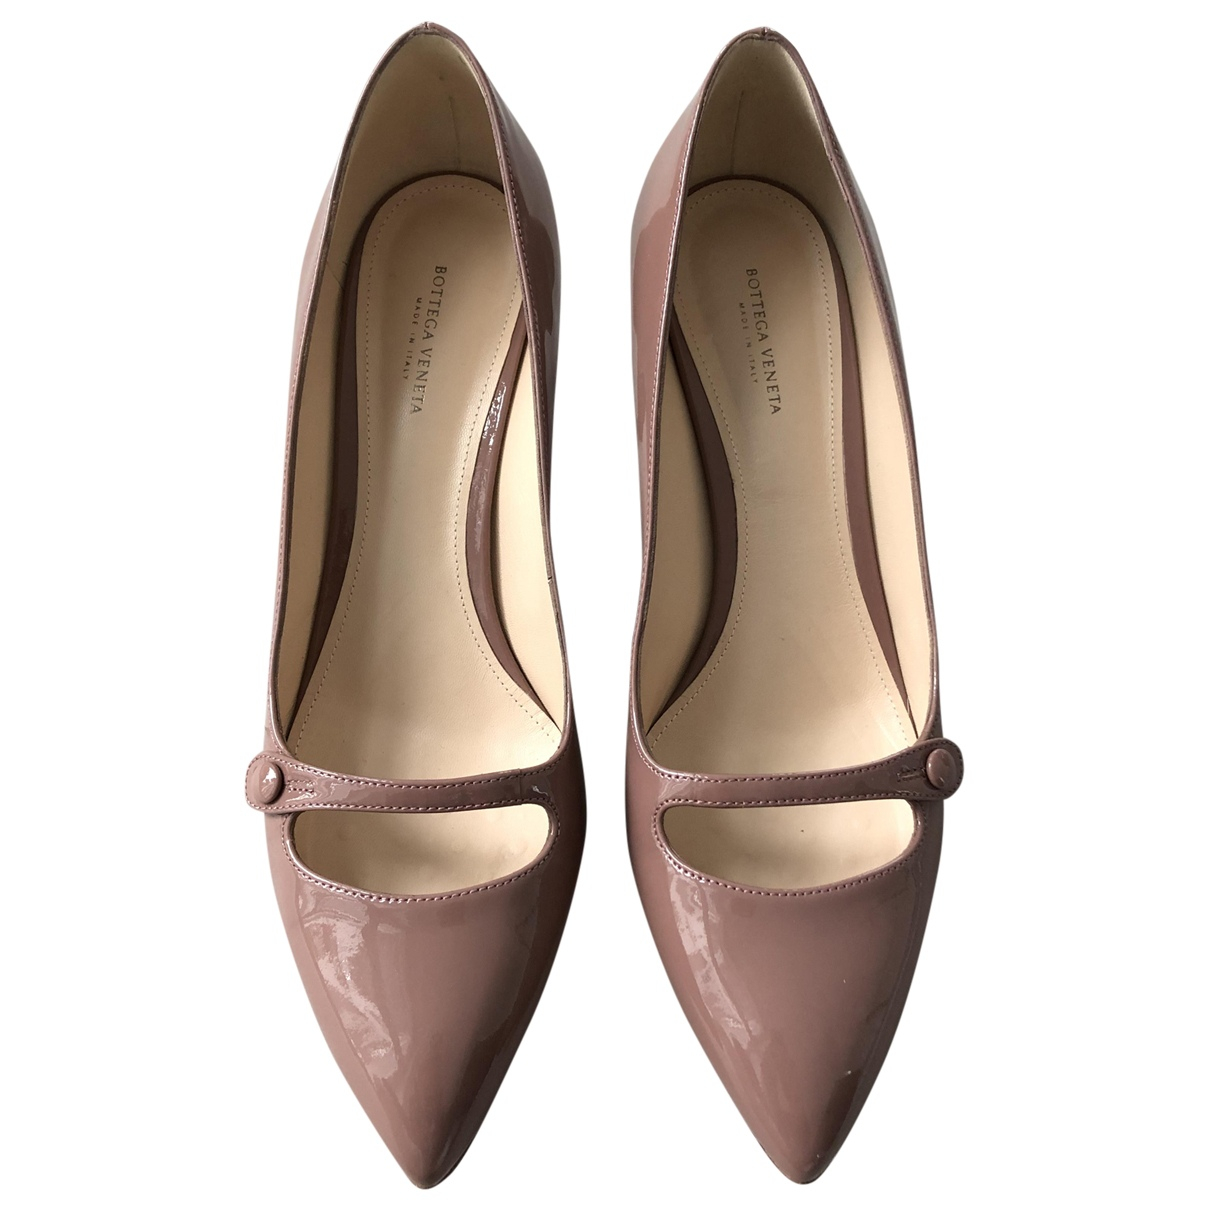 Bottega Veneta \N Beige Patent leather Heels for Women 39 EU